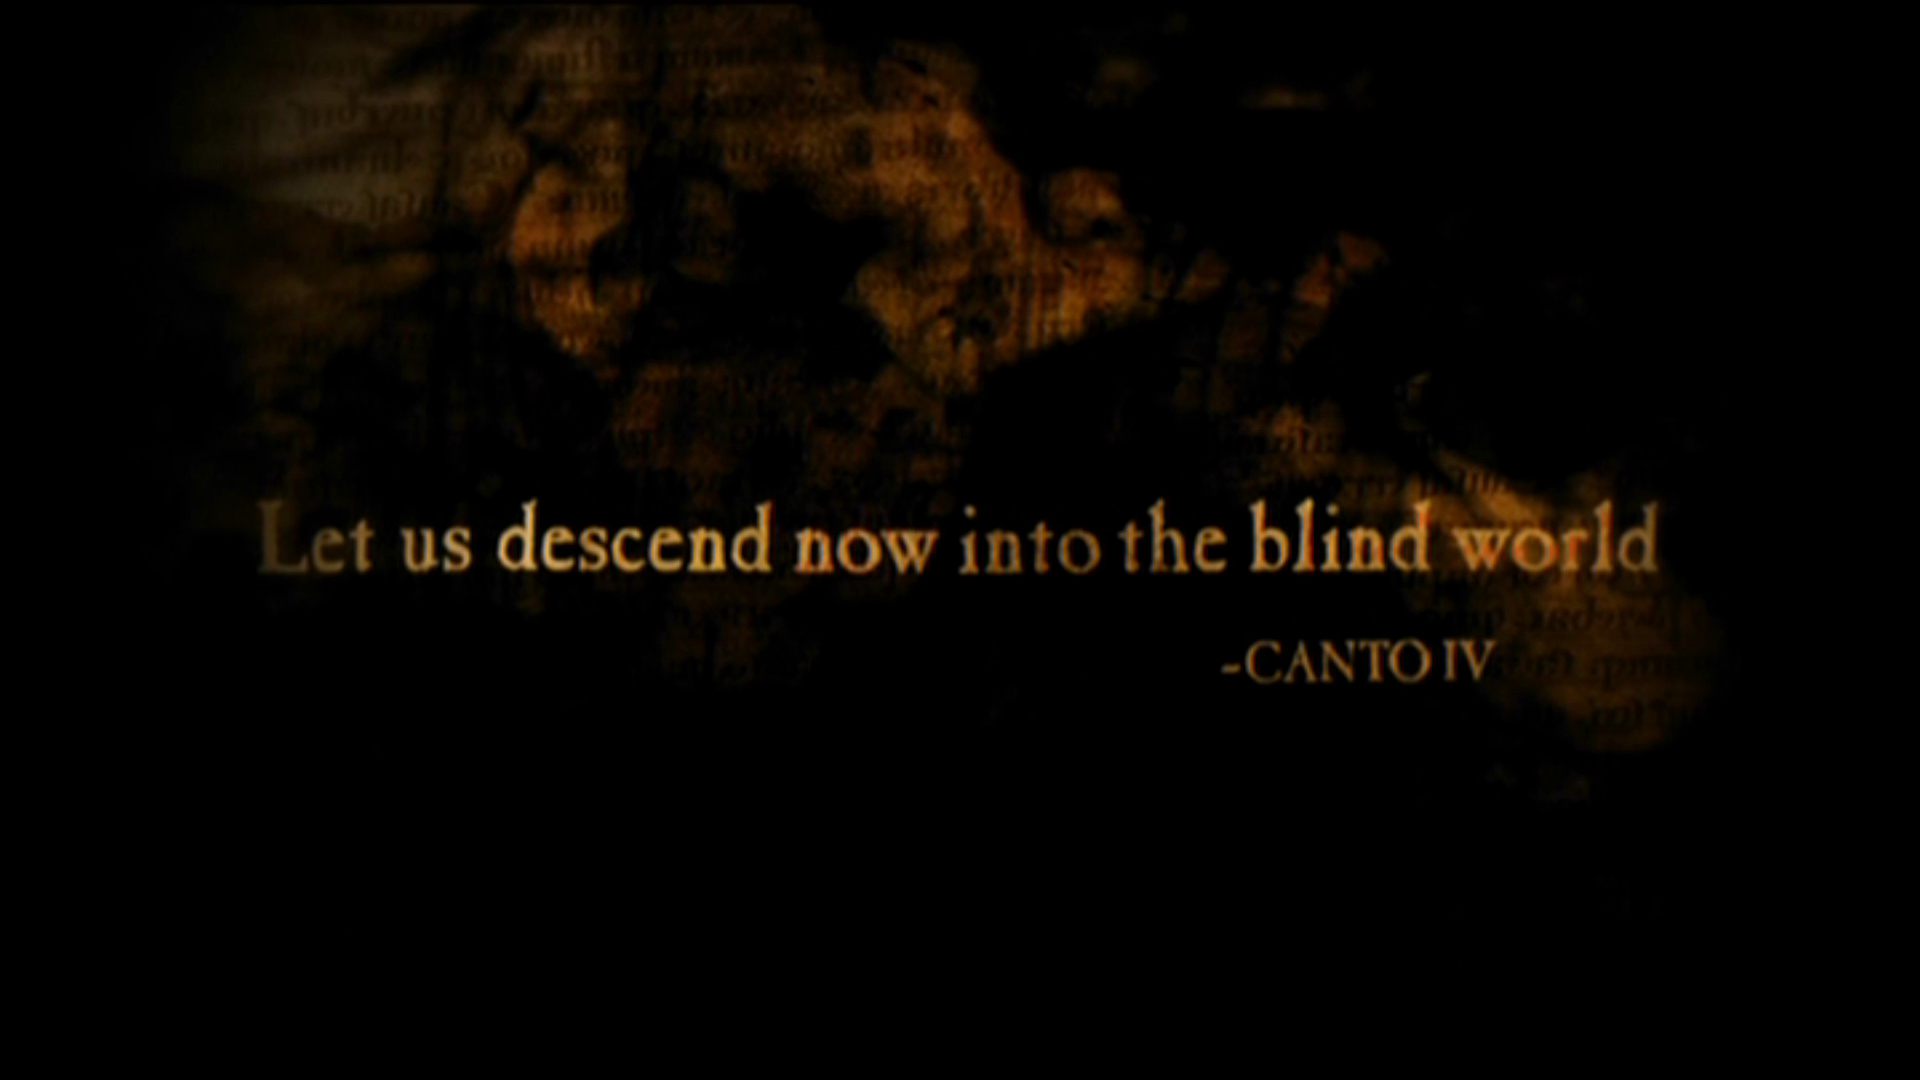 Dante On This Page Quotes Wallpaper Dante S Inferno Hd Wallpaper Background Image